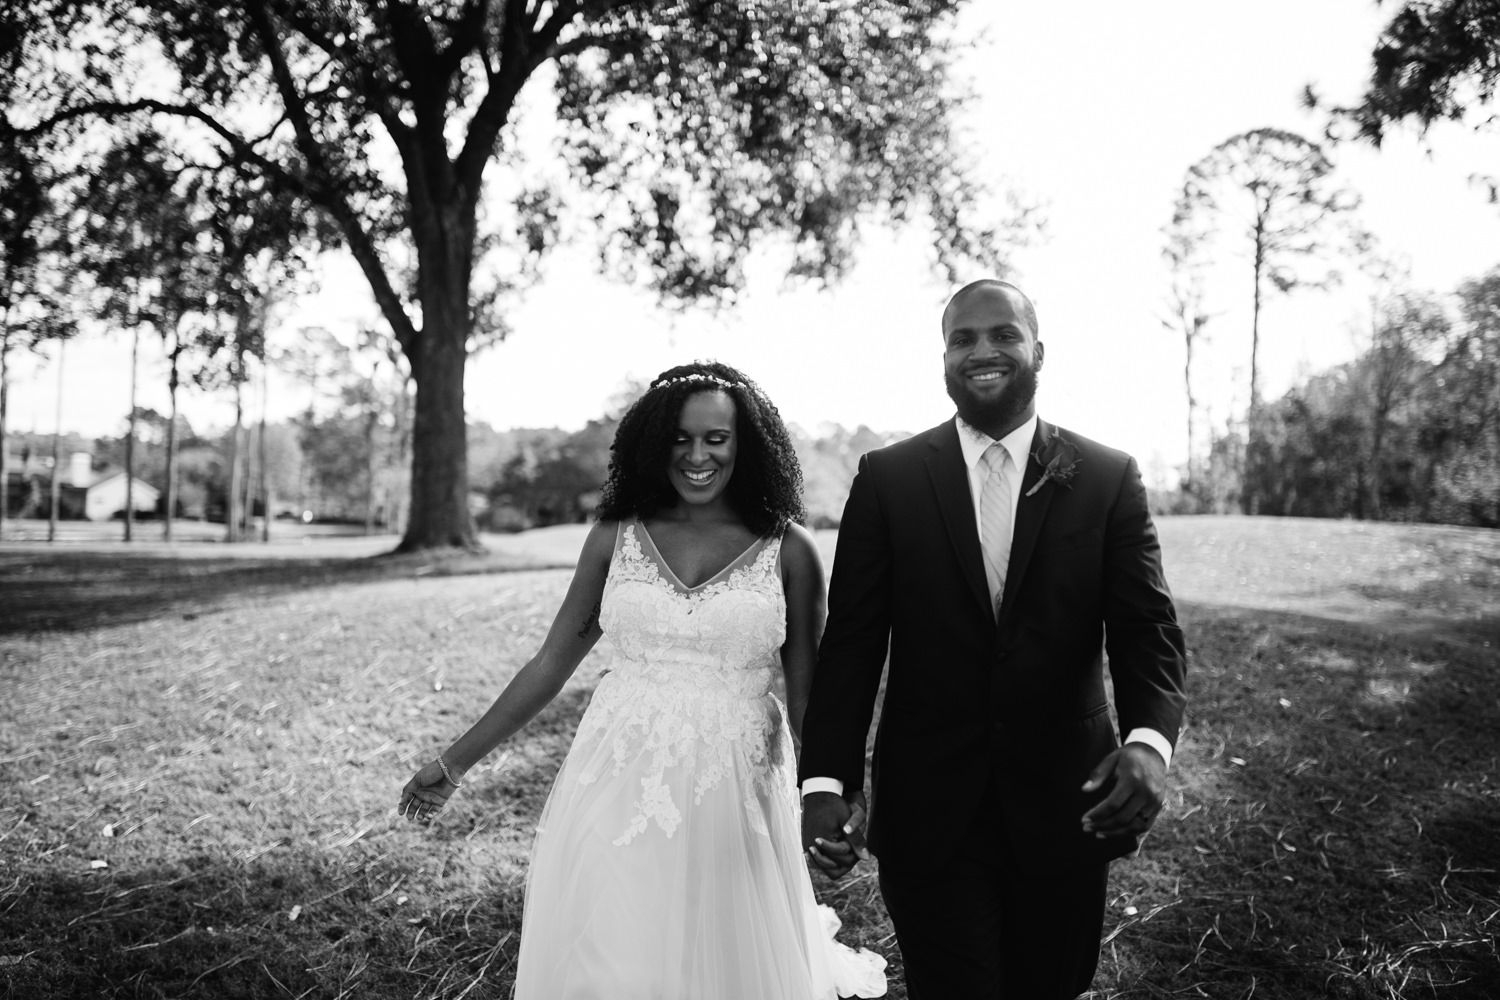 Best wedding photographer in the southeast